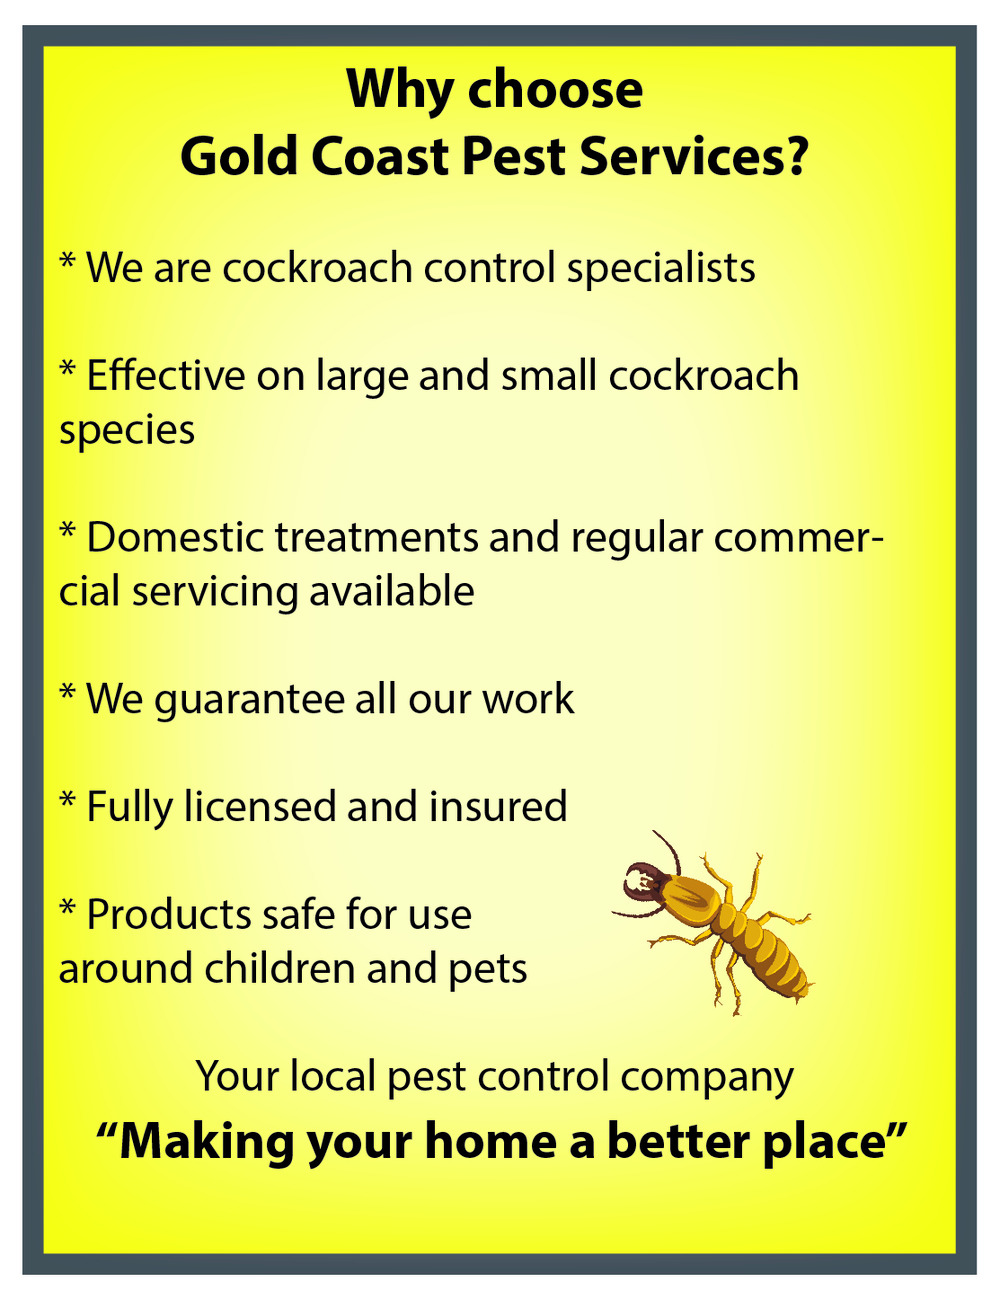 Cockroach control why choose us1.jpg